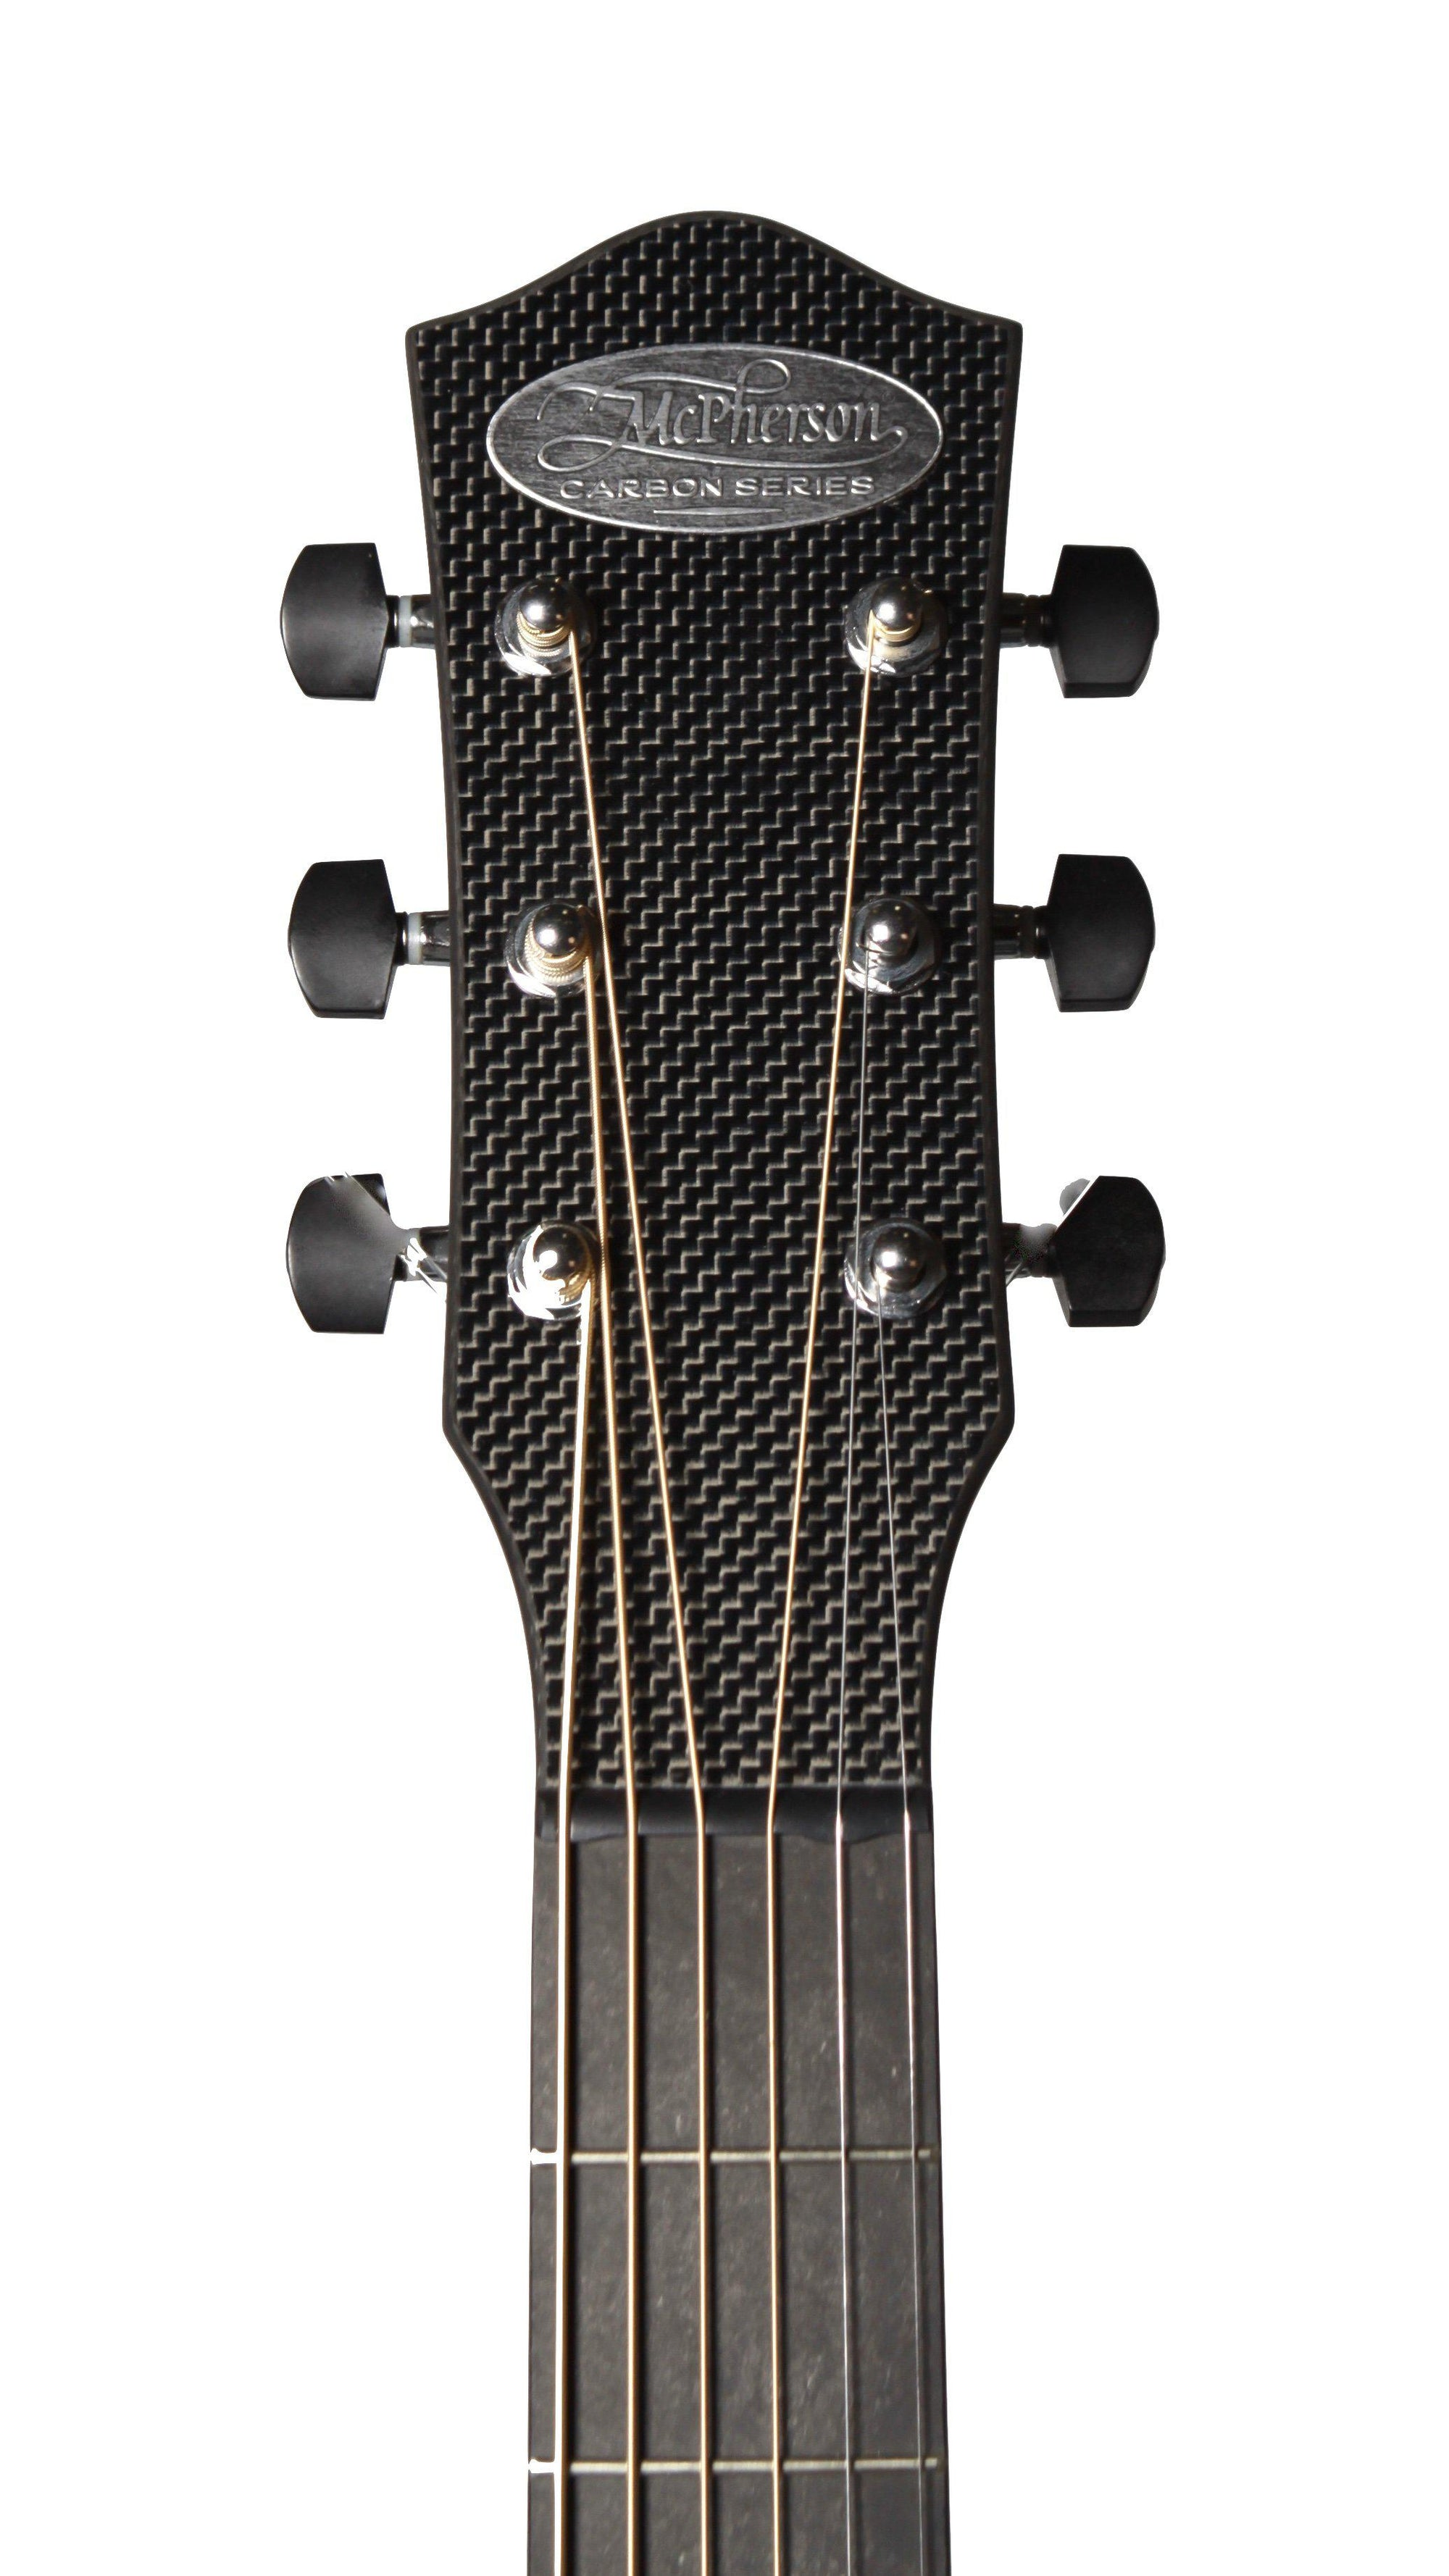 McPherson Sable Chrome Hardware Original Pattern #10055 - McPherson Guitars - Heartbreaker Guitars